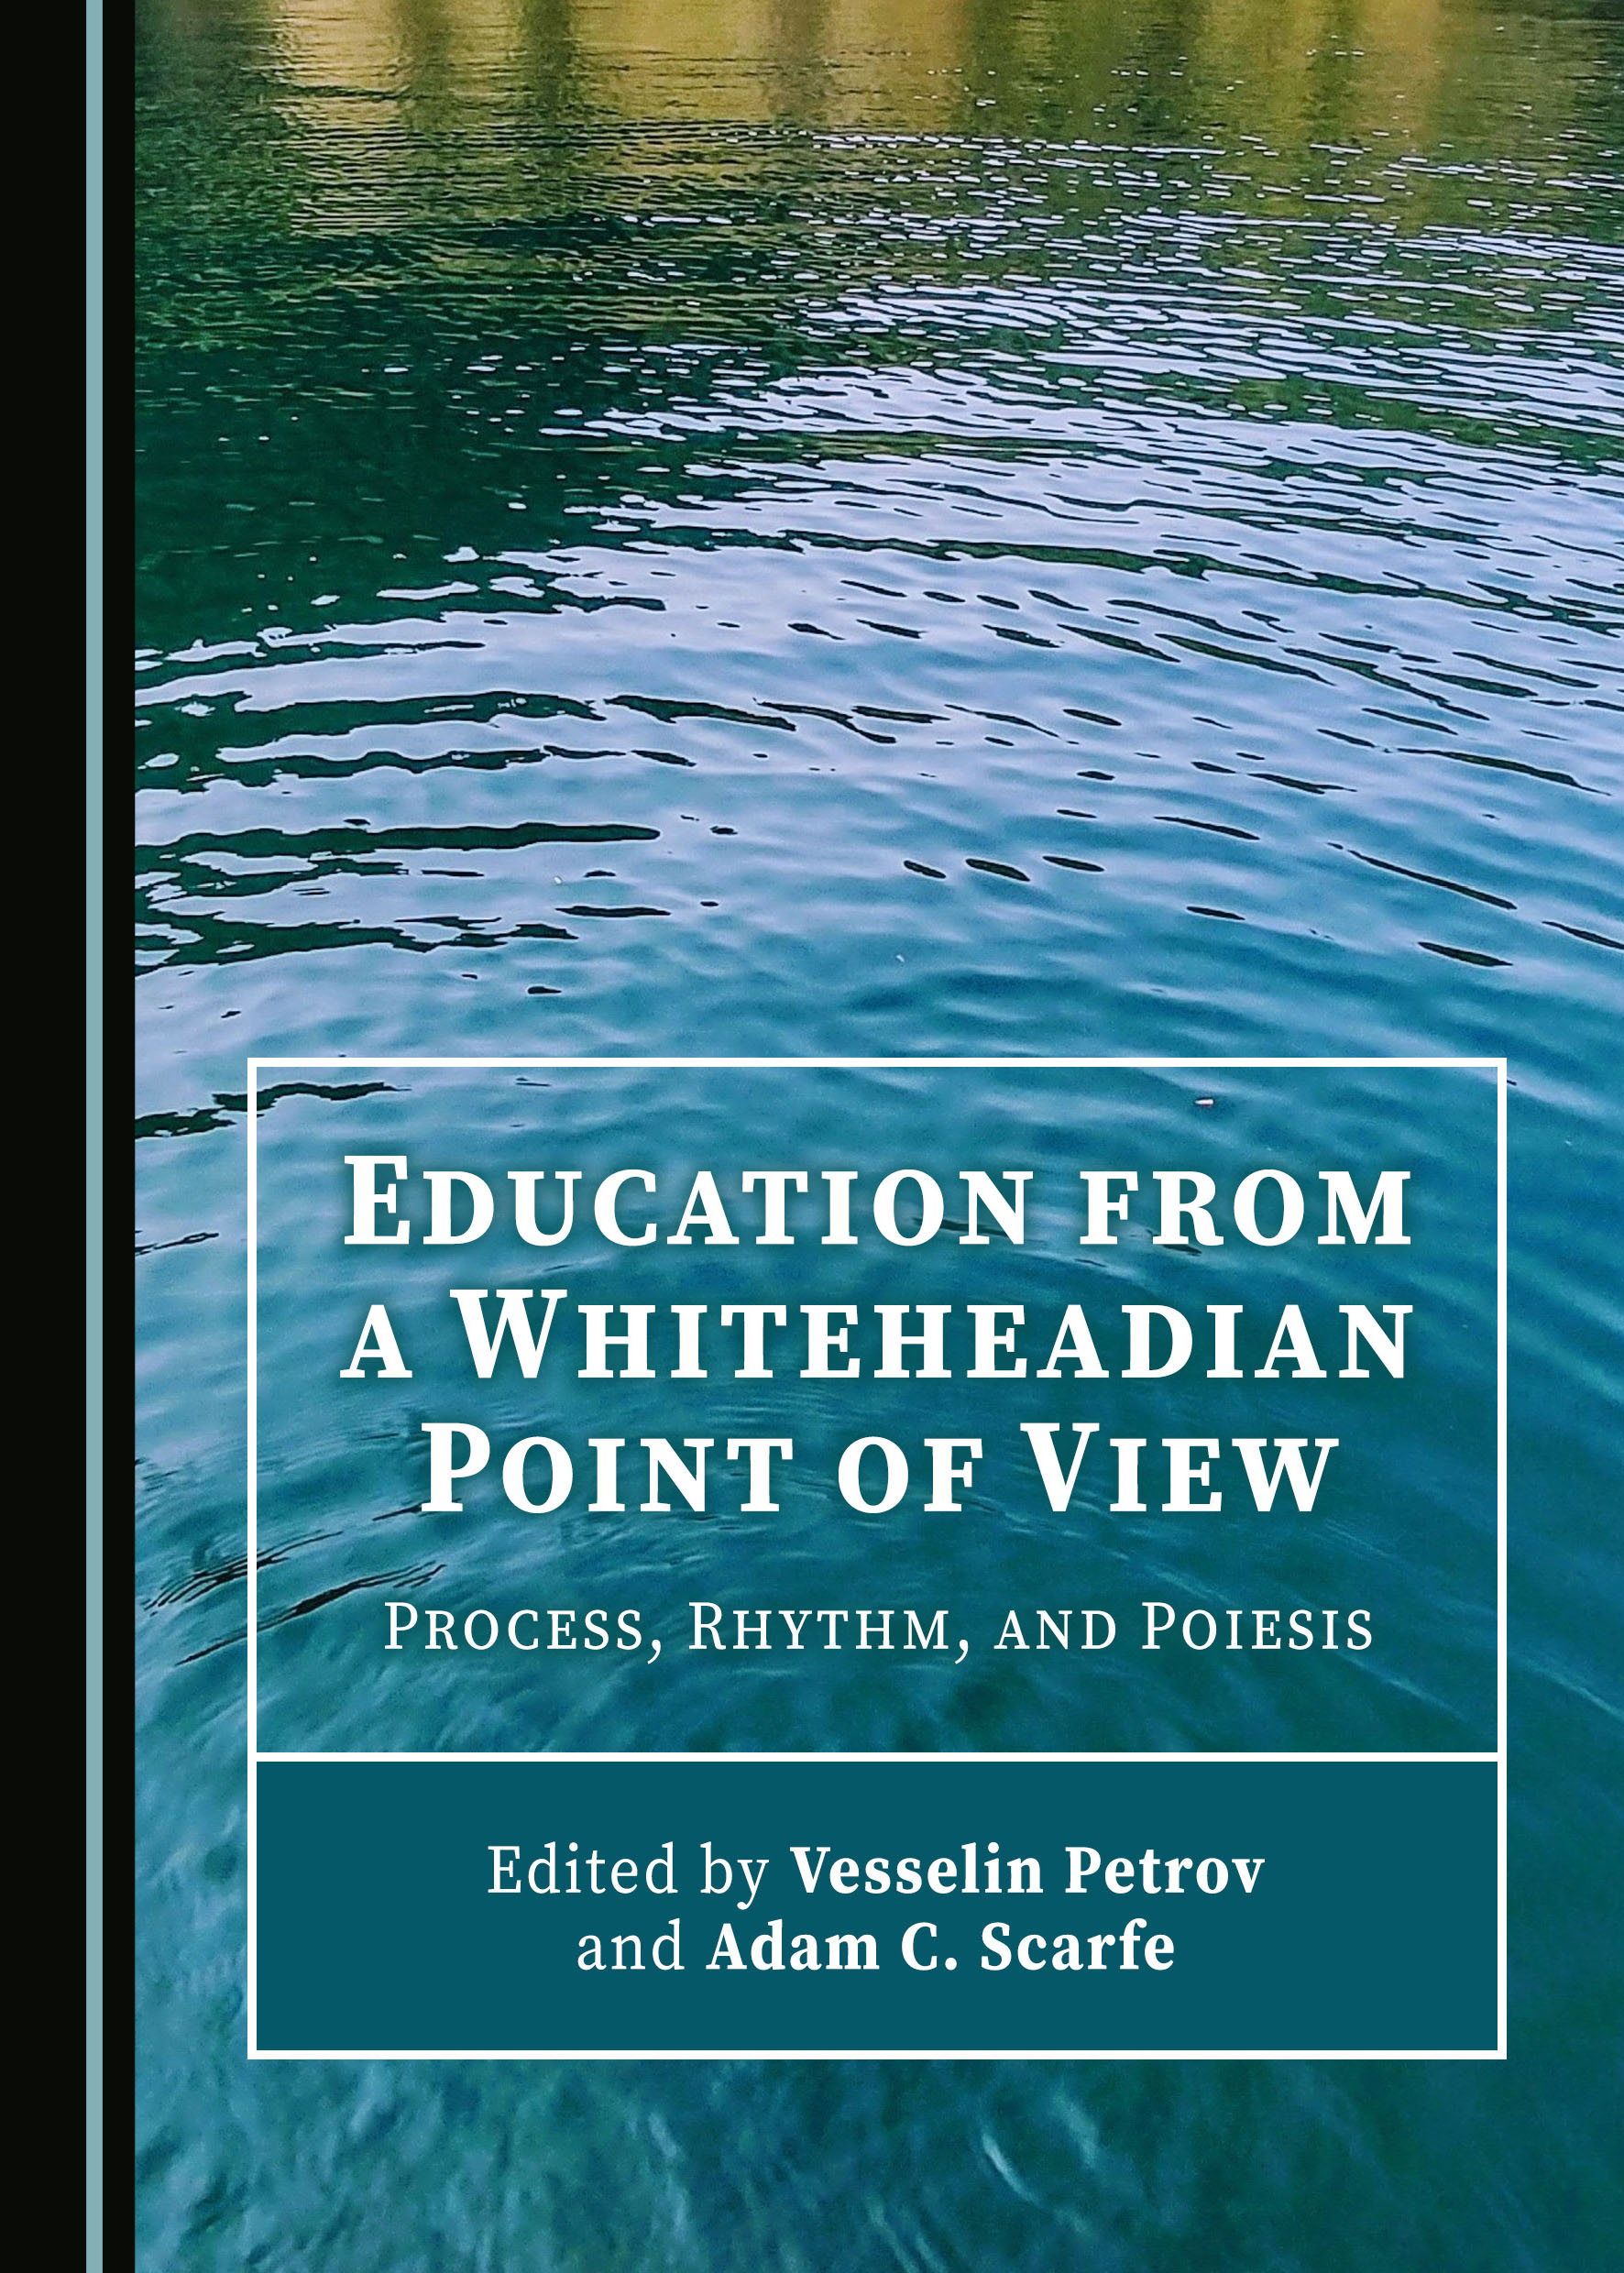 Education from a Whiteheadian Point of View: Process, Rhythm, and Poiesis